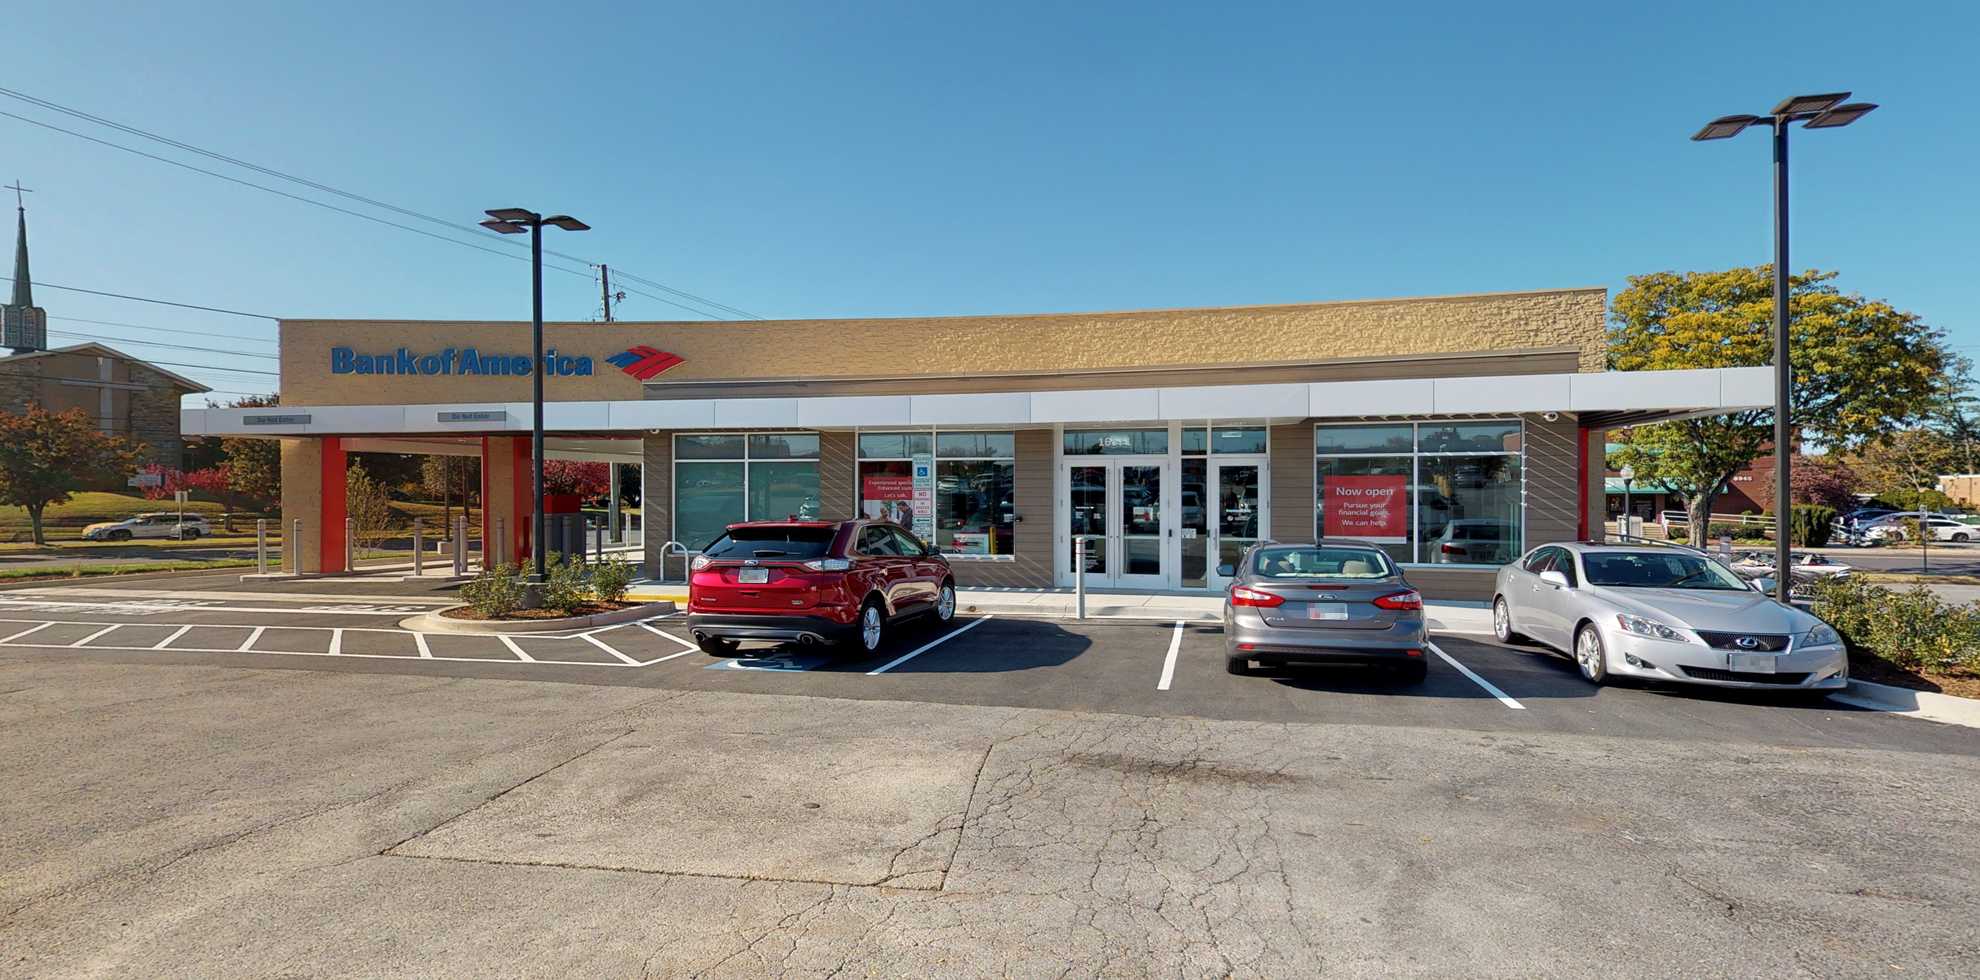 Bank of America financial center with drive-thru ATM | 16571 S Frederick Ave, Gaithersburg, MD 20877